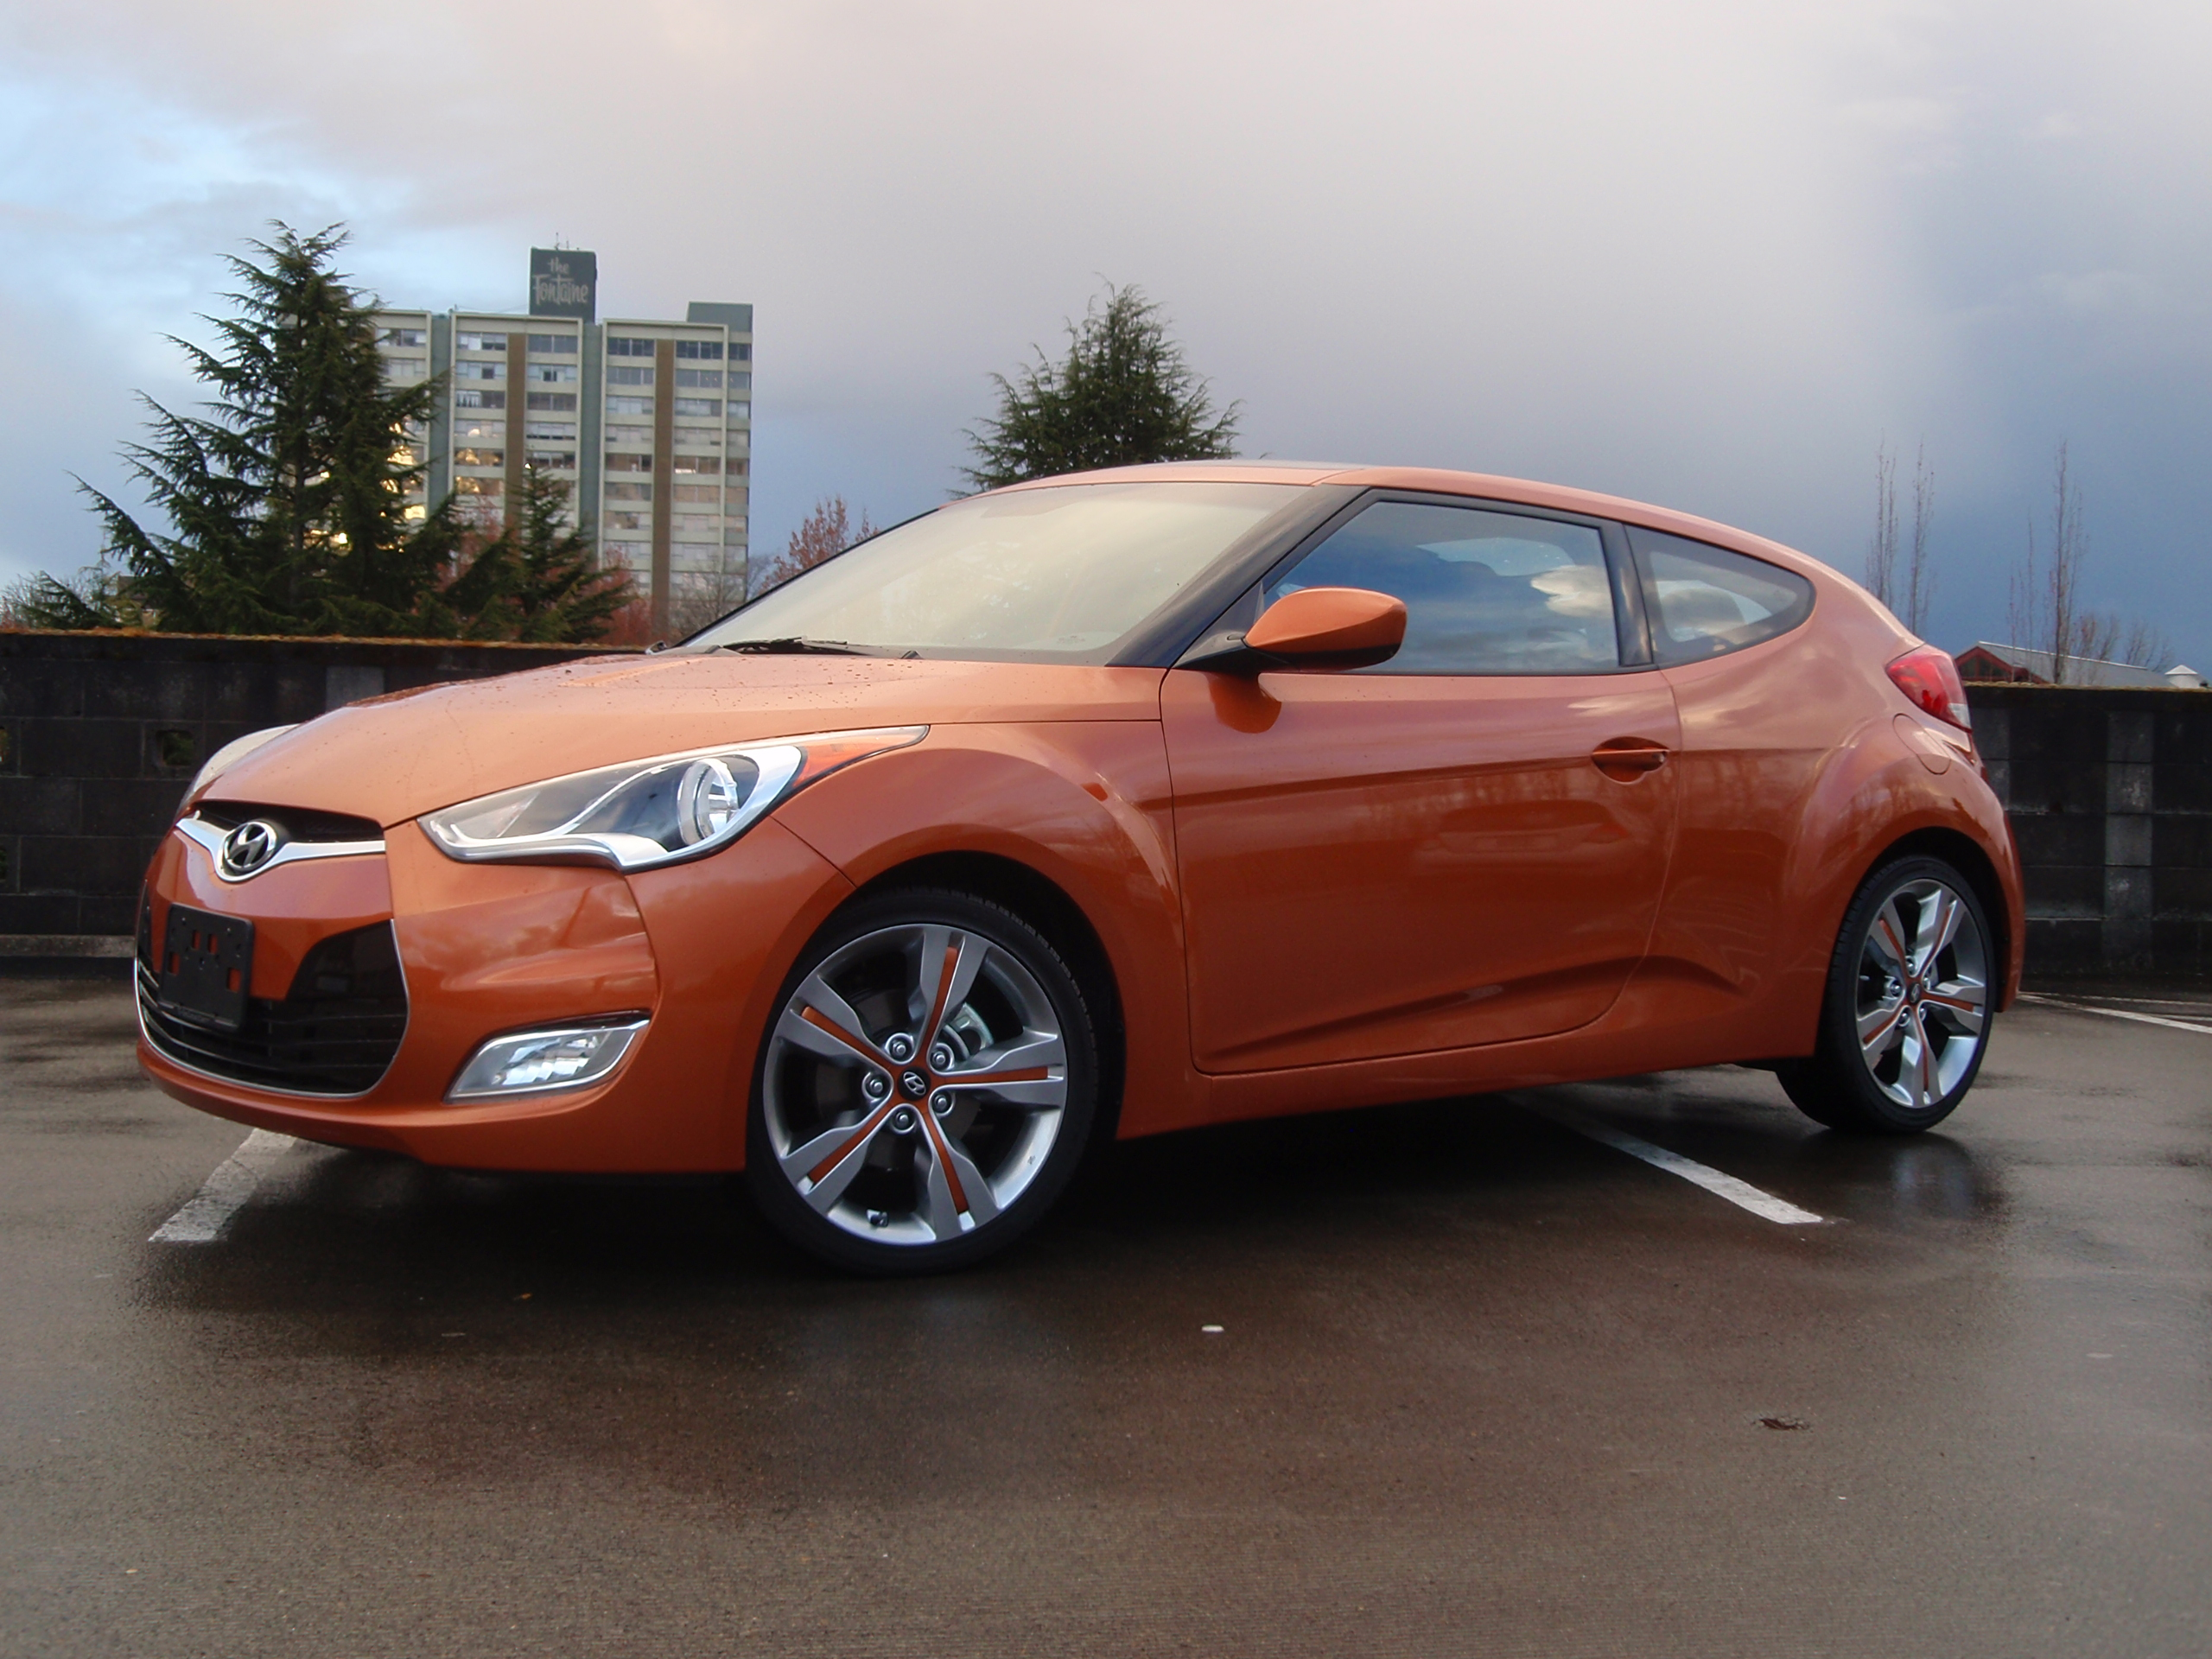 hyundai myautoworld autonews turbo new dsc veloster for all com sale and